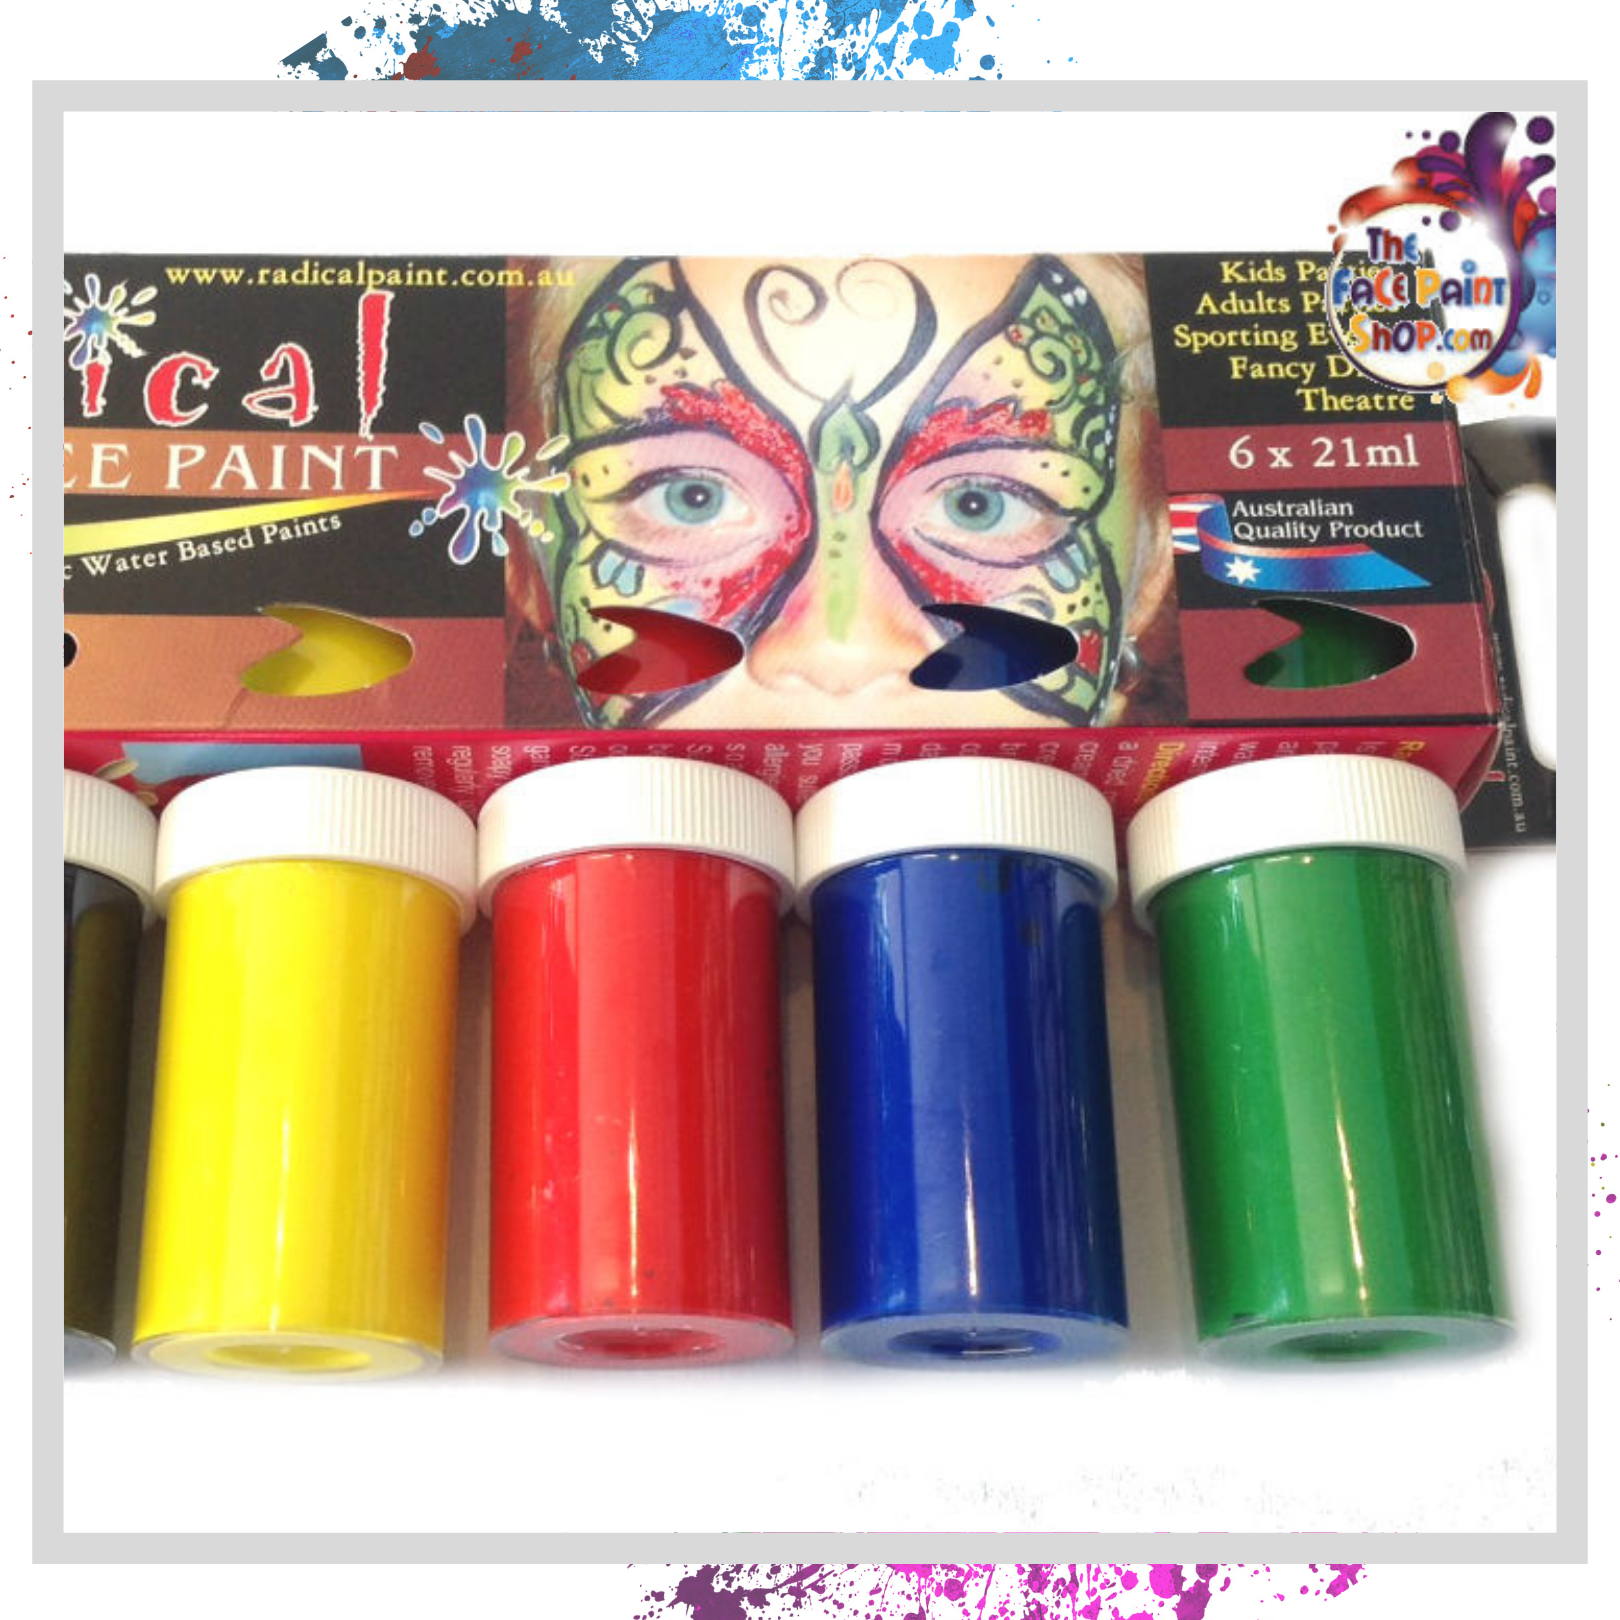 6 x 21ml Face Paint Set Body Painting Art Party Make Up Radical Paint Australian